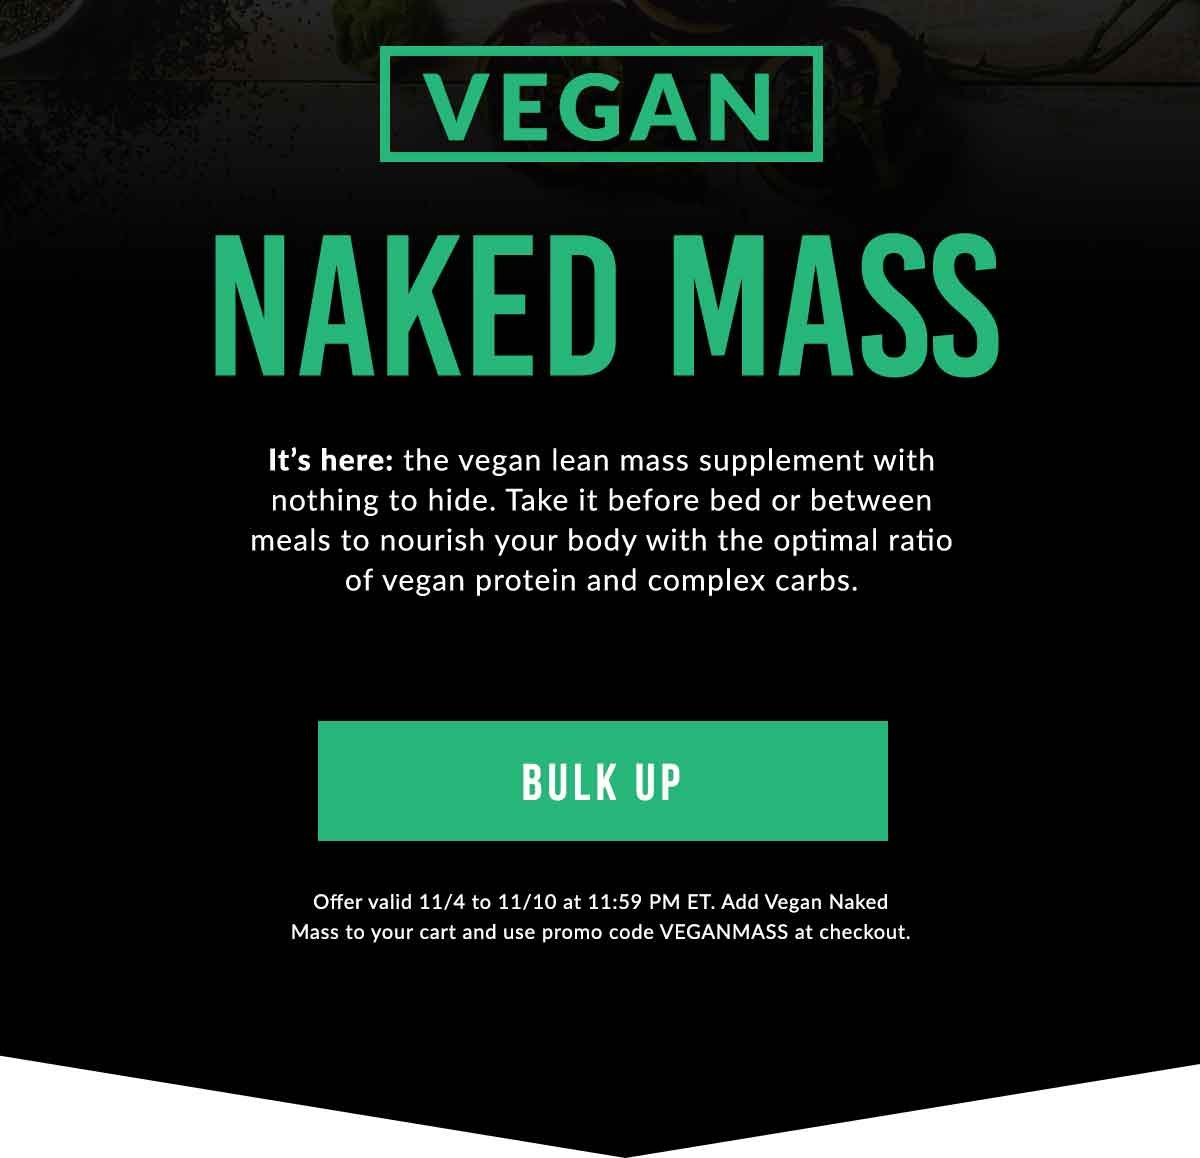 VEGAN NAKED MASS | It's here: the vegan lean mass supplement with nothing to hide. Take it before bed or between meals to nourish your body with the optimal ratio of vegan protein and complex carbs. | BULK UP (Offer valid until 11/10 at 11:59 PM ET. Add Vegan Naked Mass to your cart and use promo code VEGANMASS at checkout.)